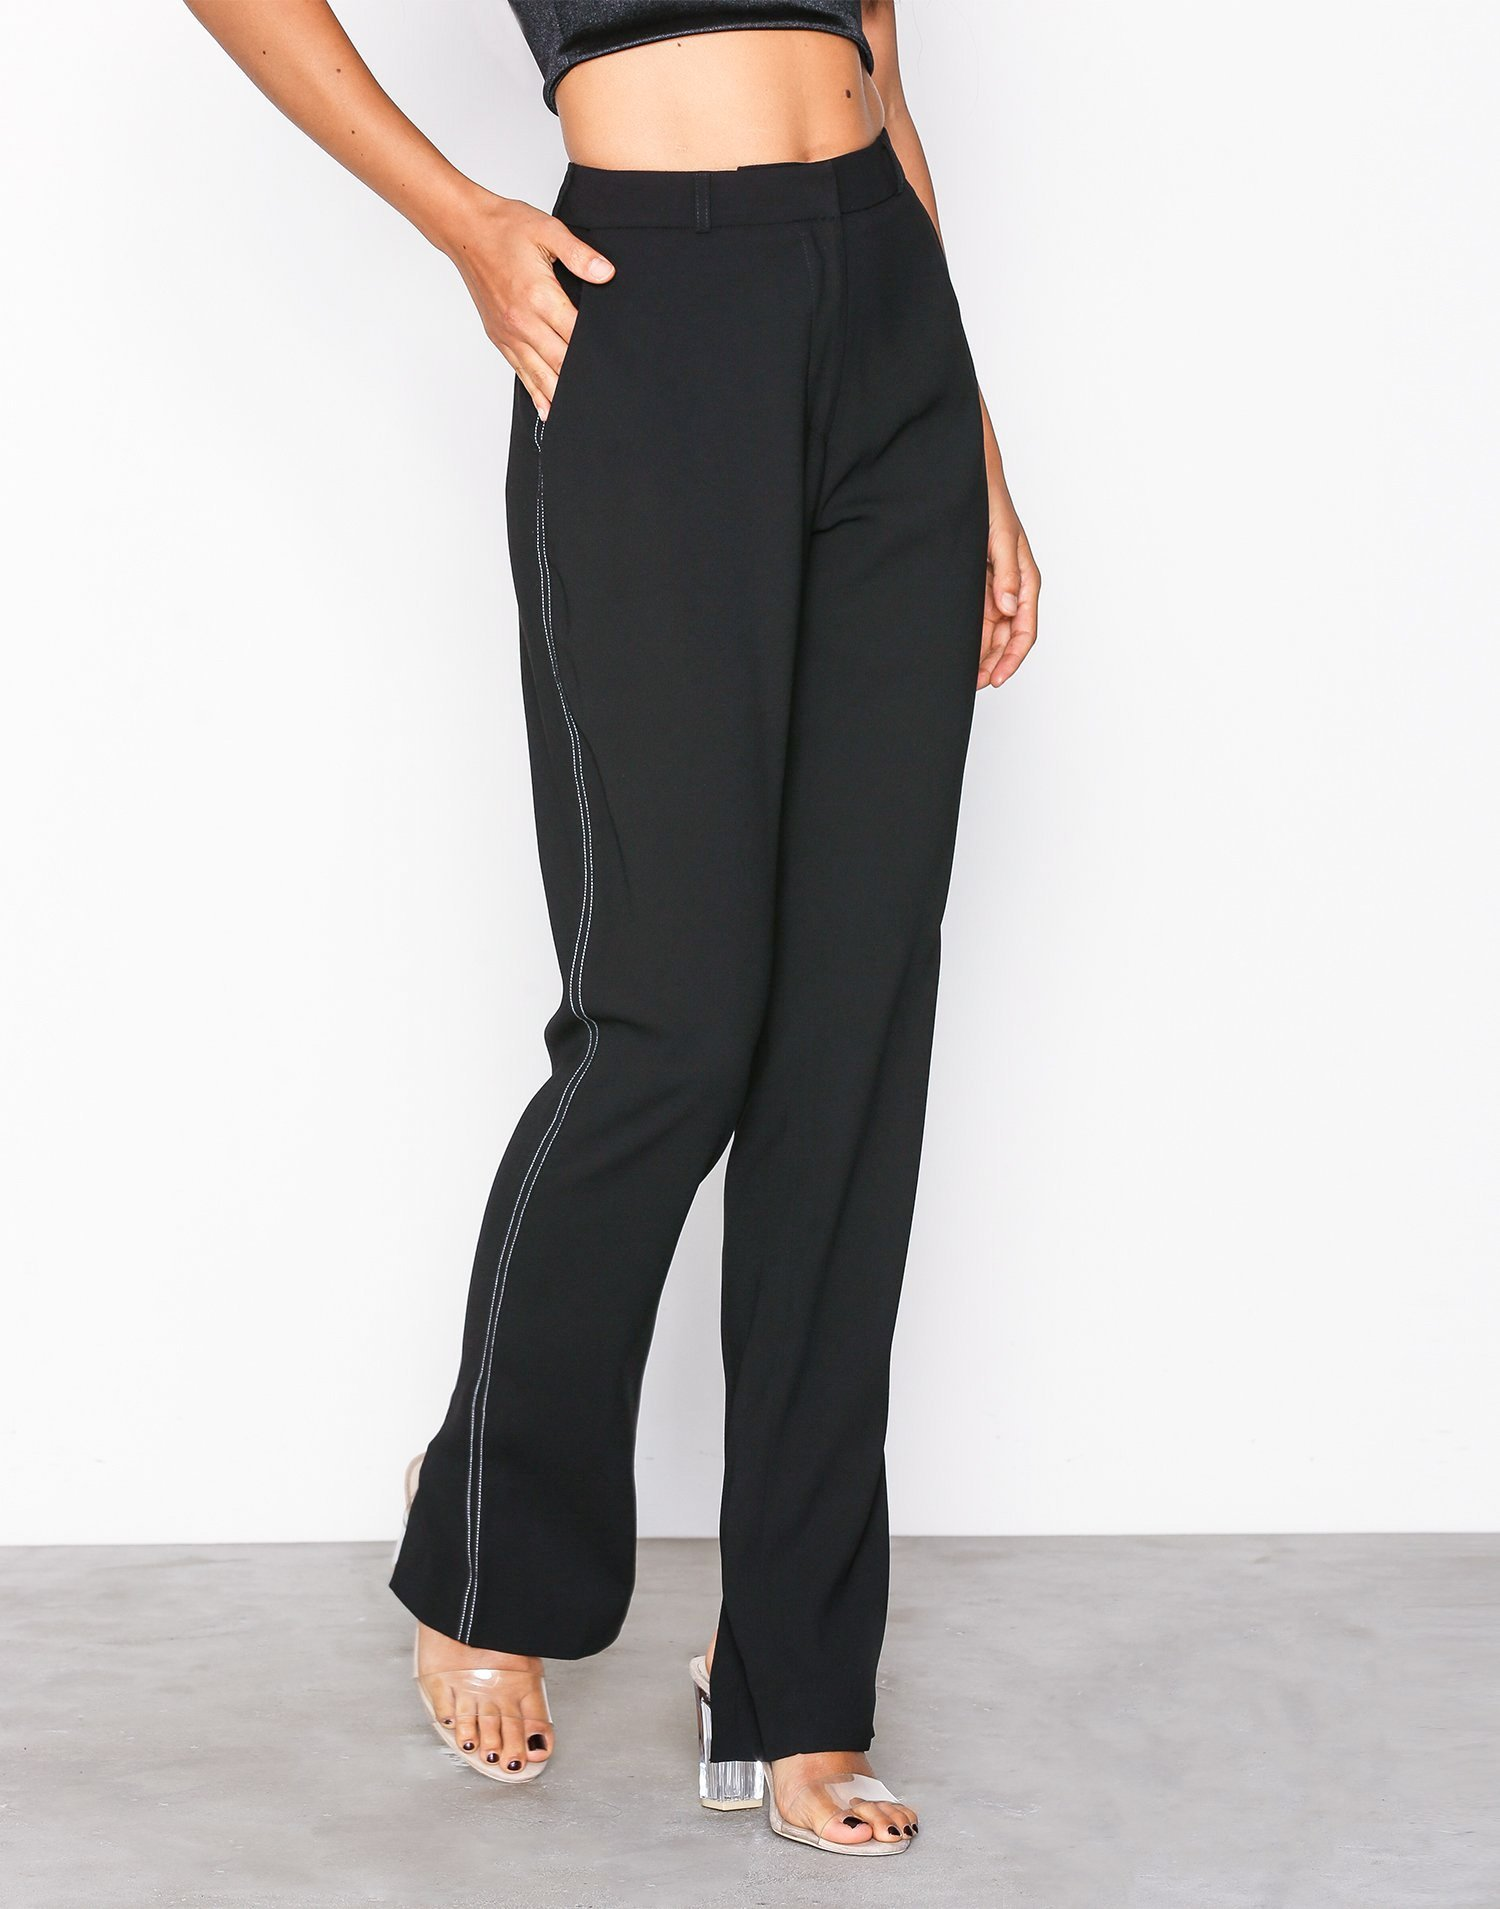 Slit Back Pants by Nly Trend